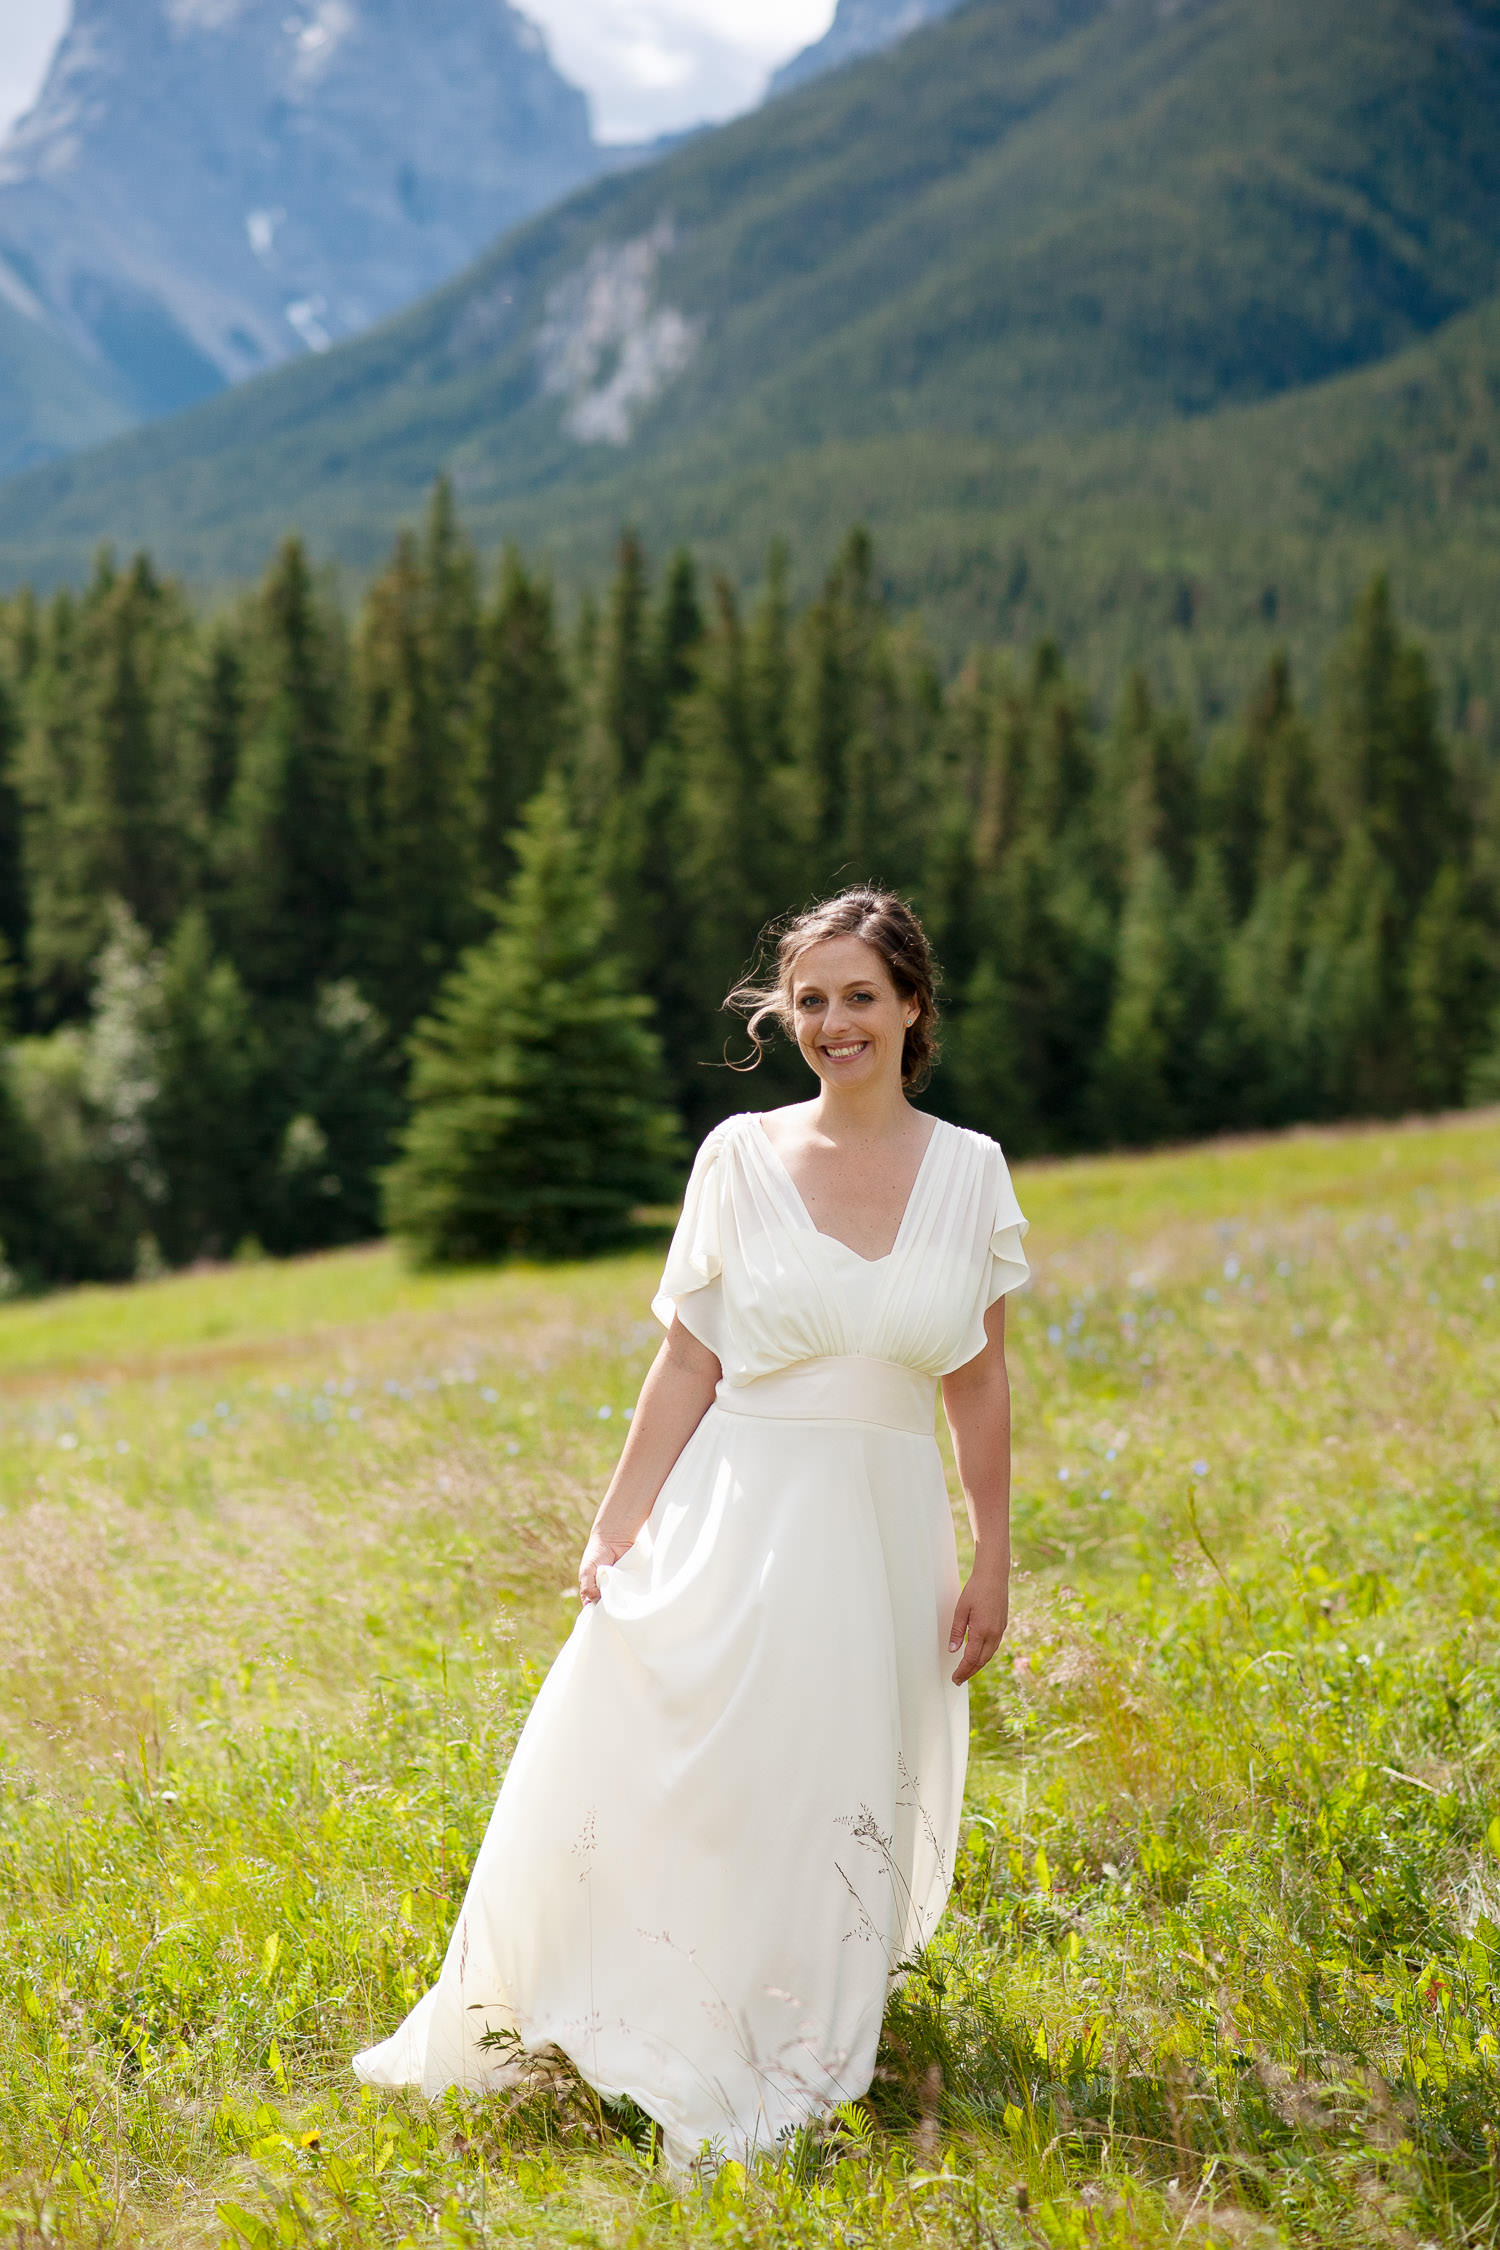 bride after her wedding at Quarry Lake in Canmore captured by Tara Whittaker Photography